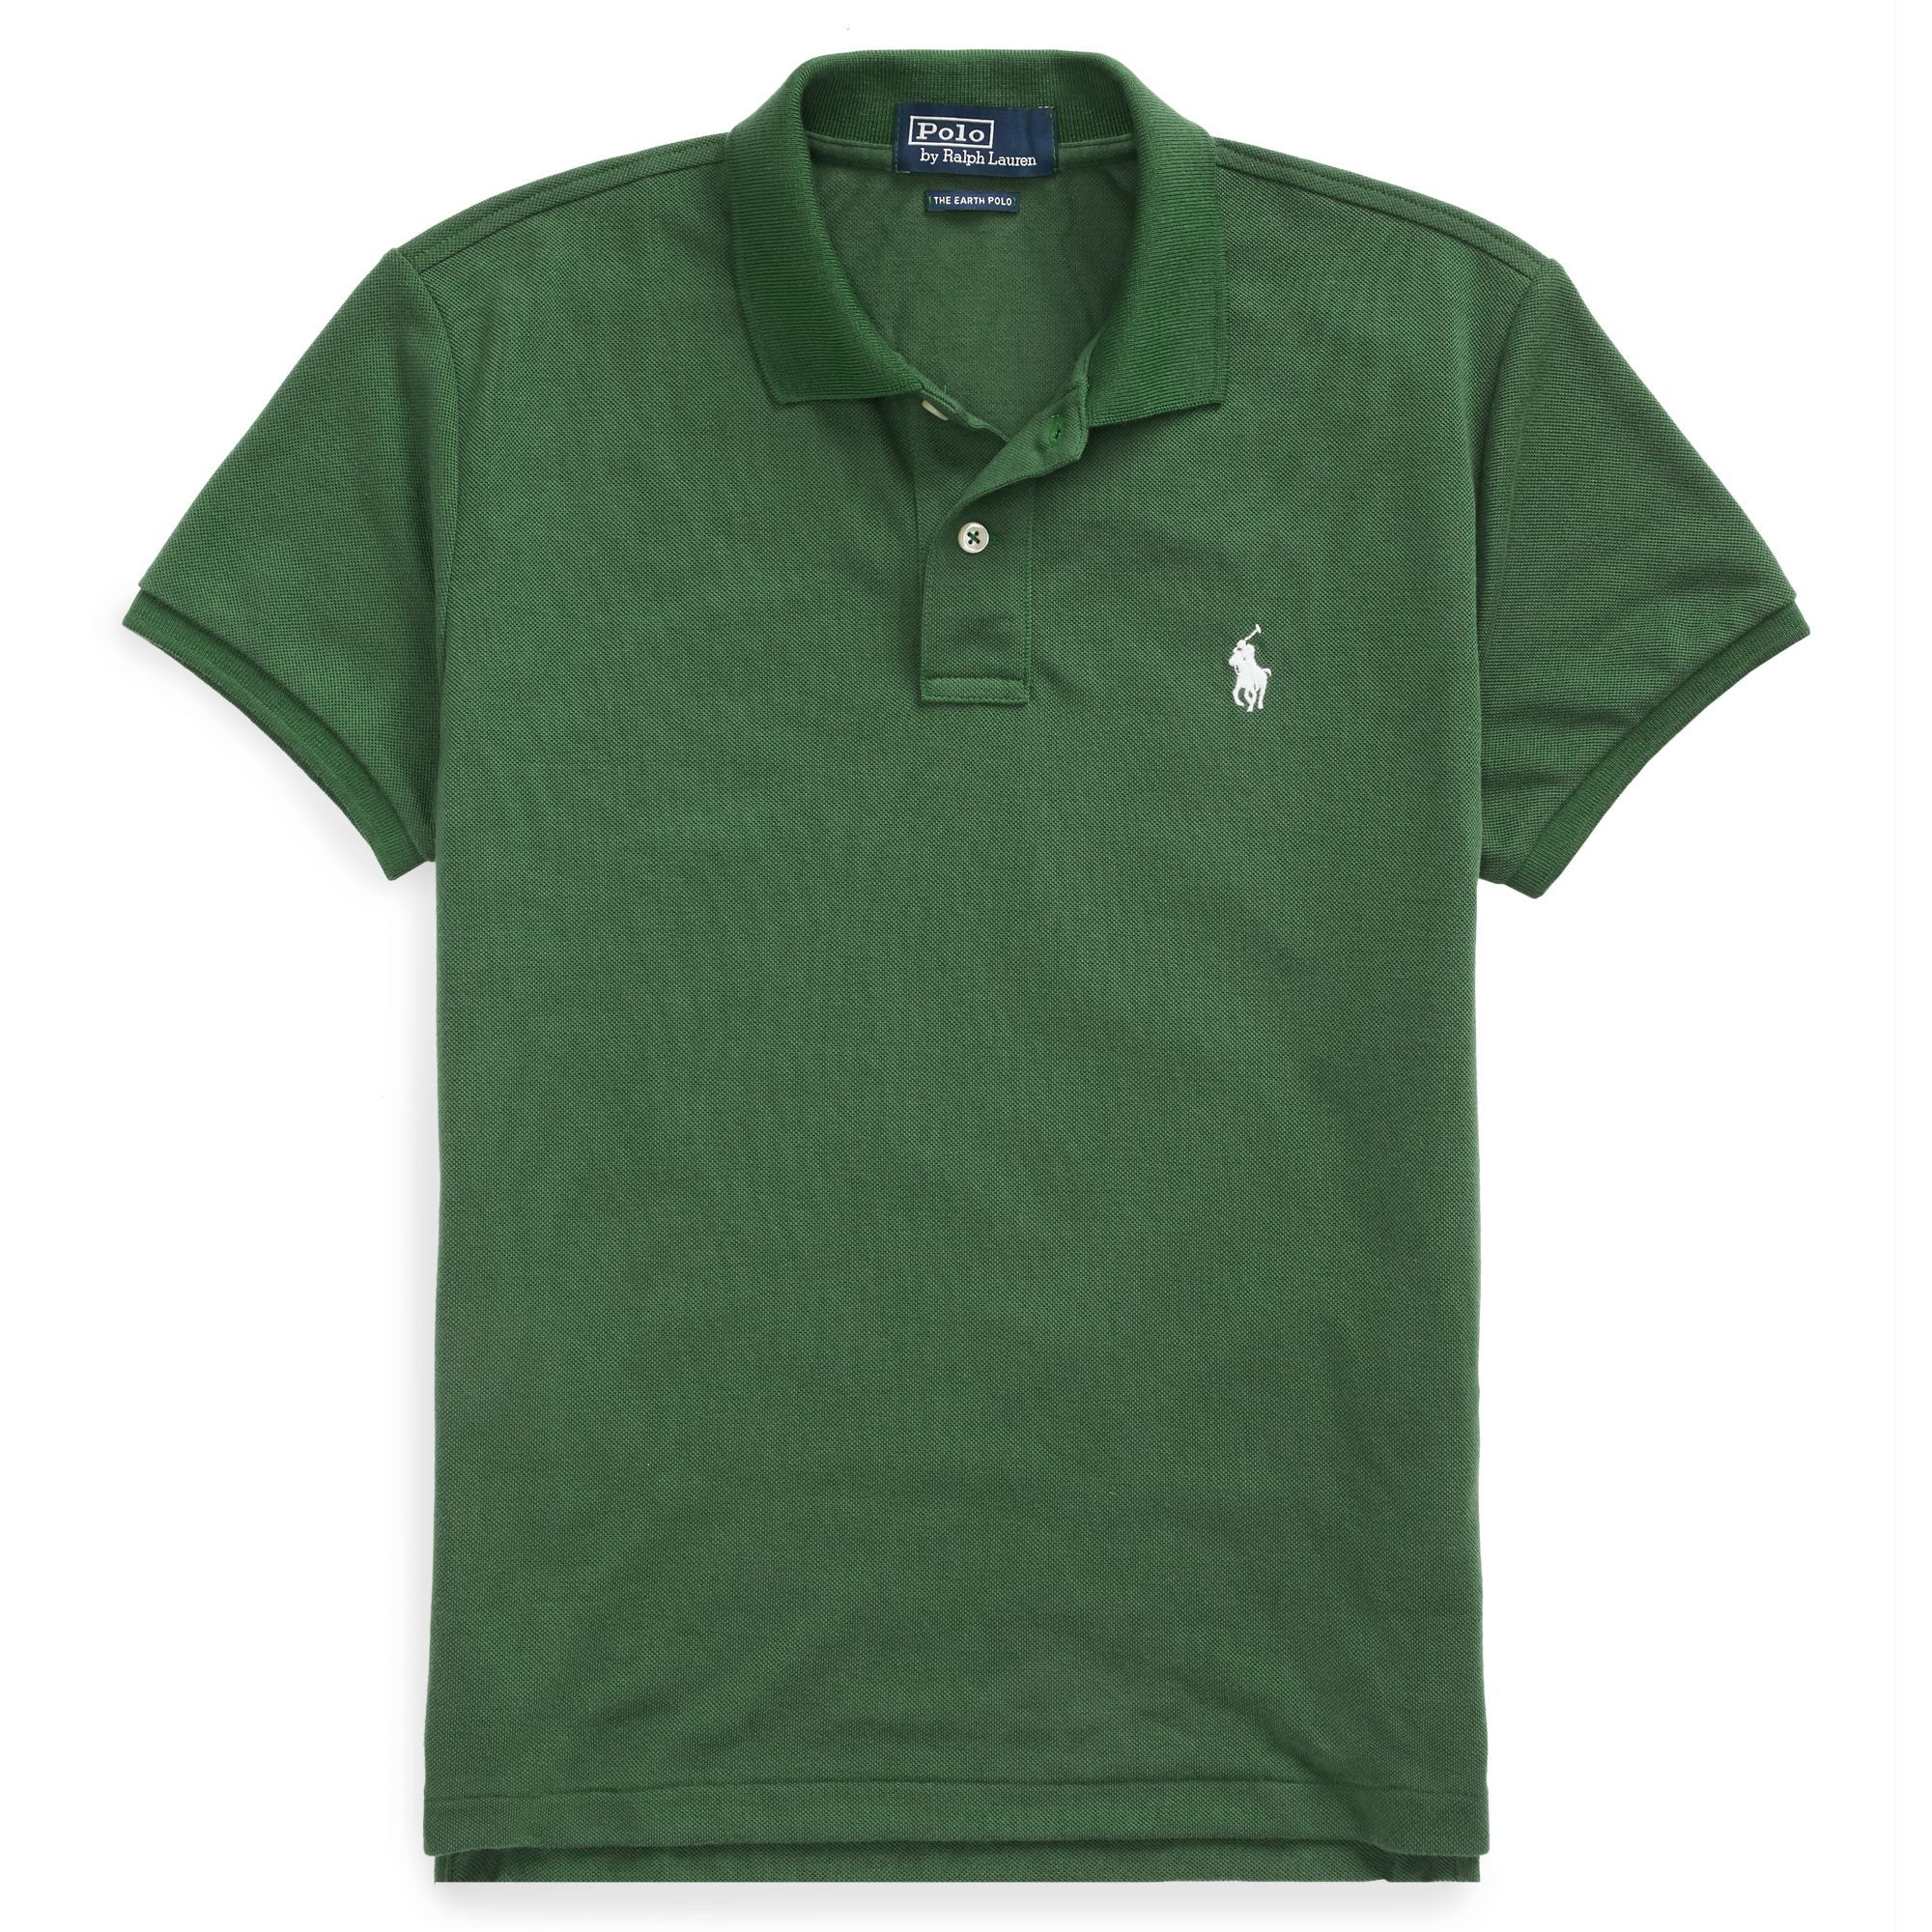 The Earth Polo Polo Ralph Lauren ralphlauren.com $89.50 SHOP NOW This year Polo Ralph Lauren launched an eco-friendly iteration of its iconic silhouette. The Earth Polo is made entirely of recycled water bottles and comes in a small assortment of colors, including green, white, and blue.